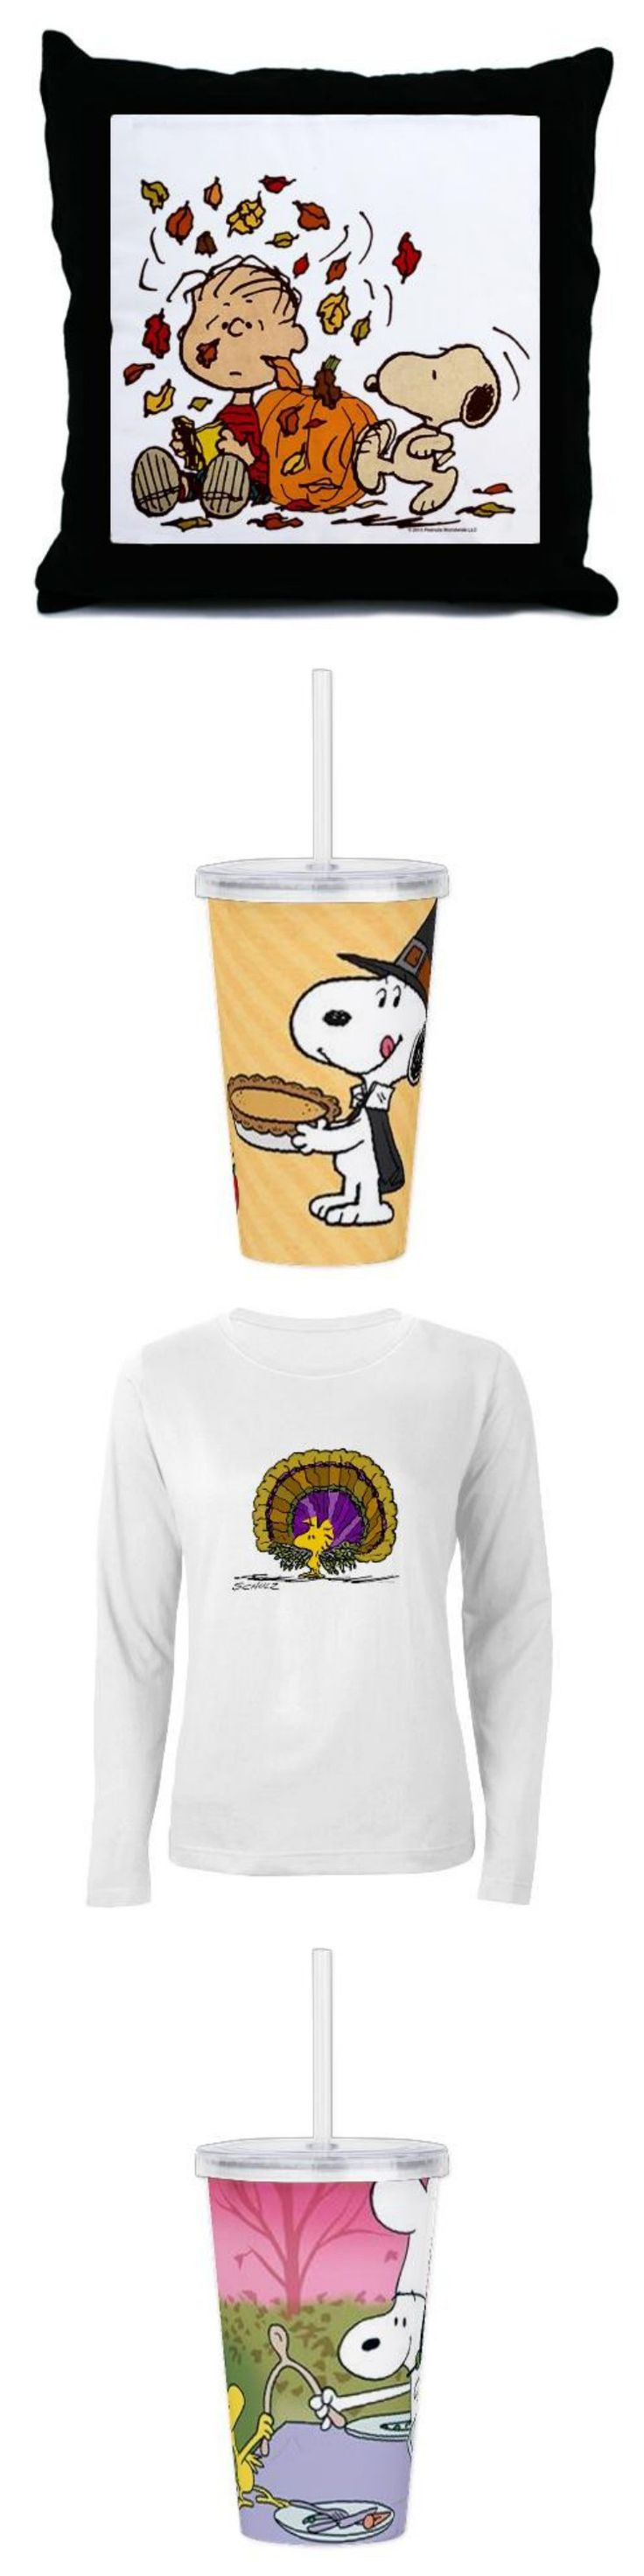 The seasons are changing! Mix things up in your home and closet with new Thanksgiving and fall designs from The Snoopy Store featuring your favorite Peanuts characters. Start shopping at CollectPeanuts.com and help support our site!